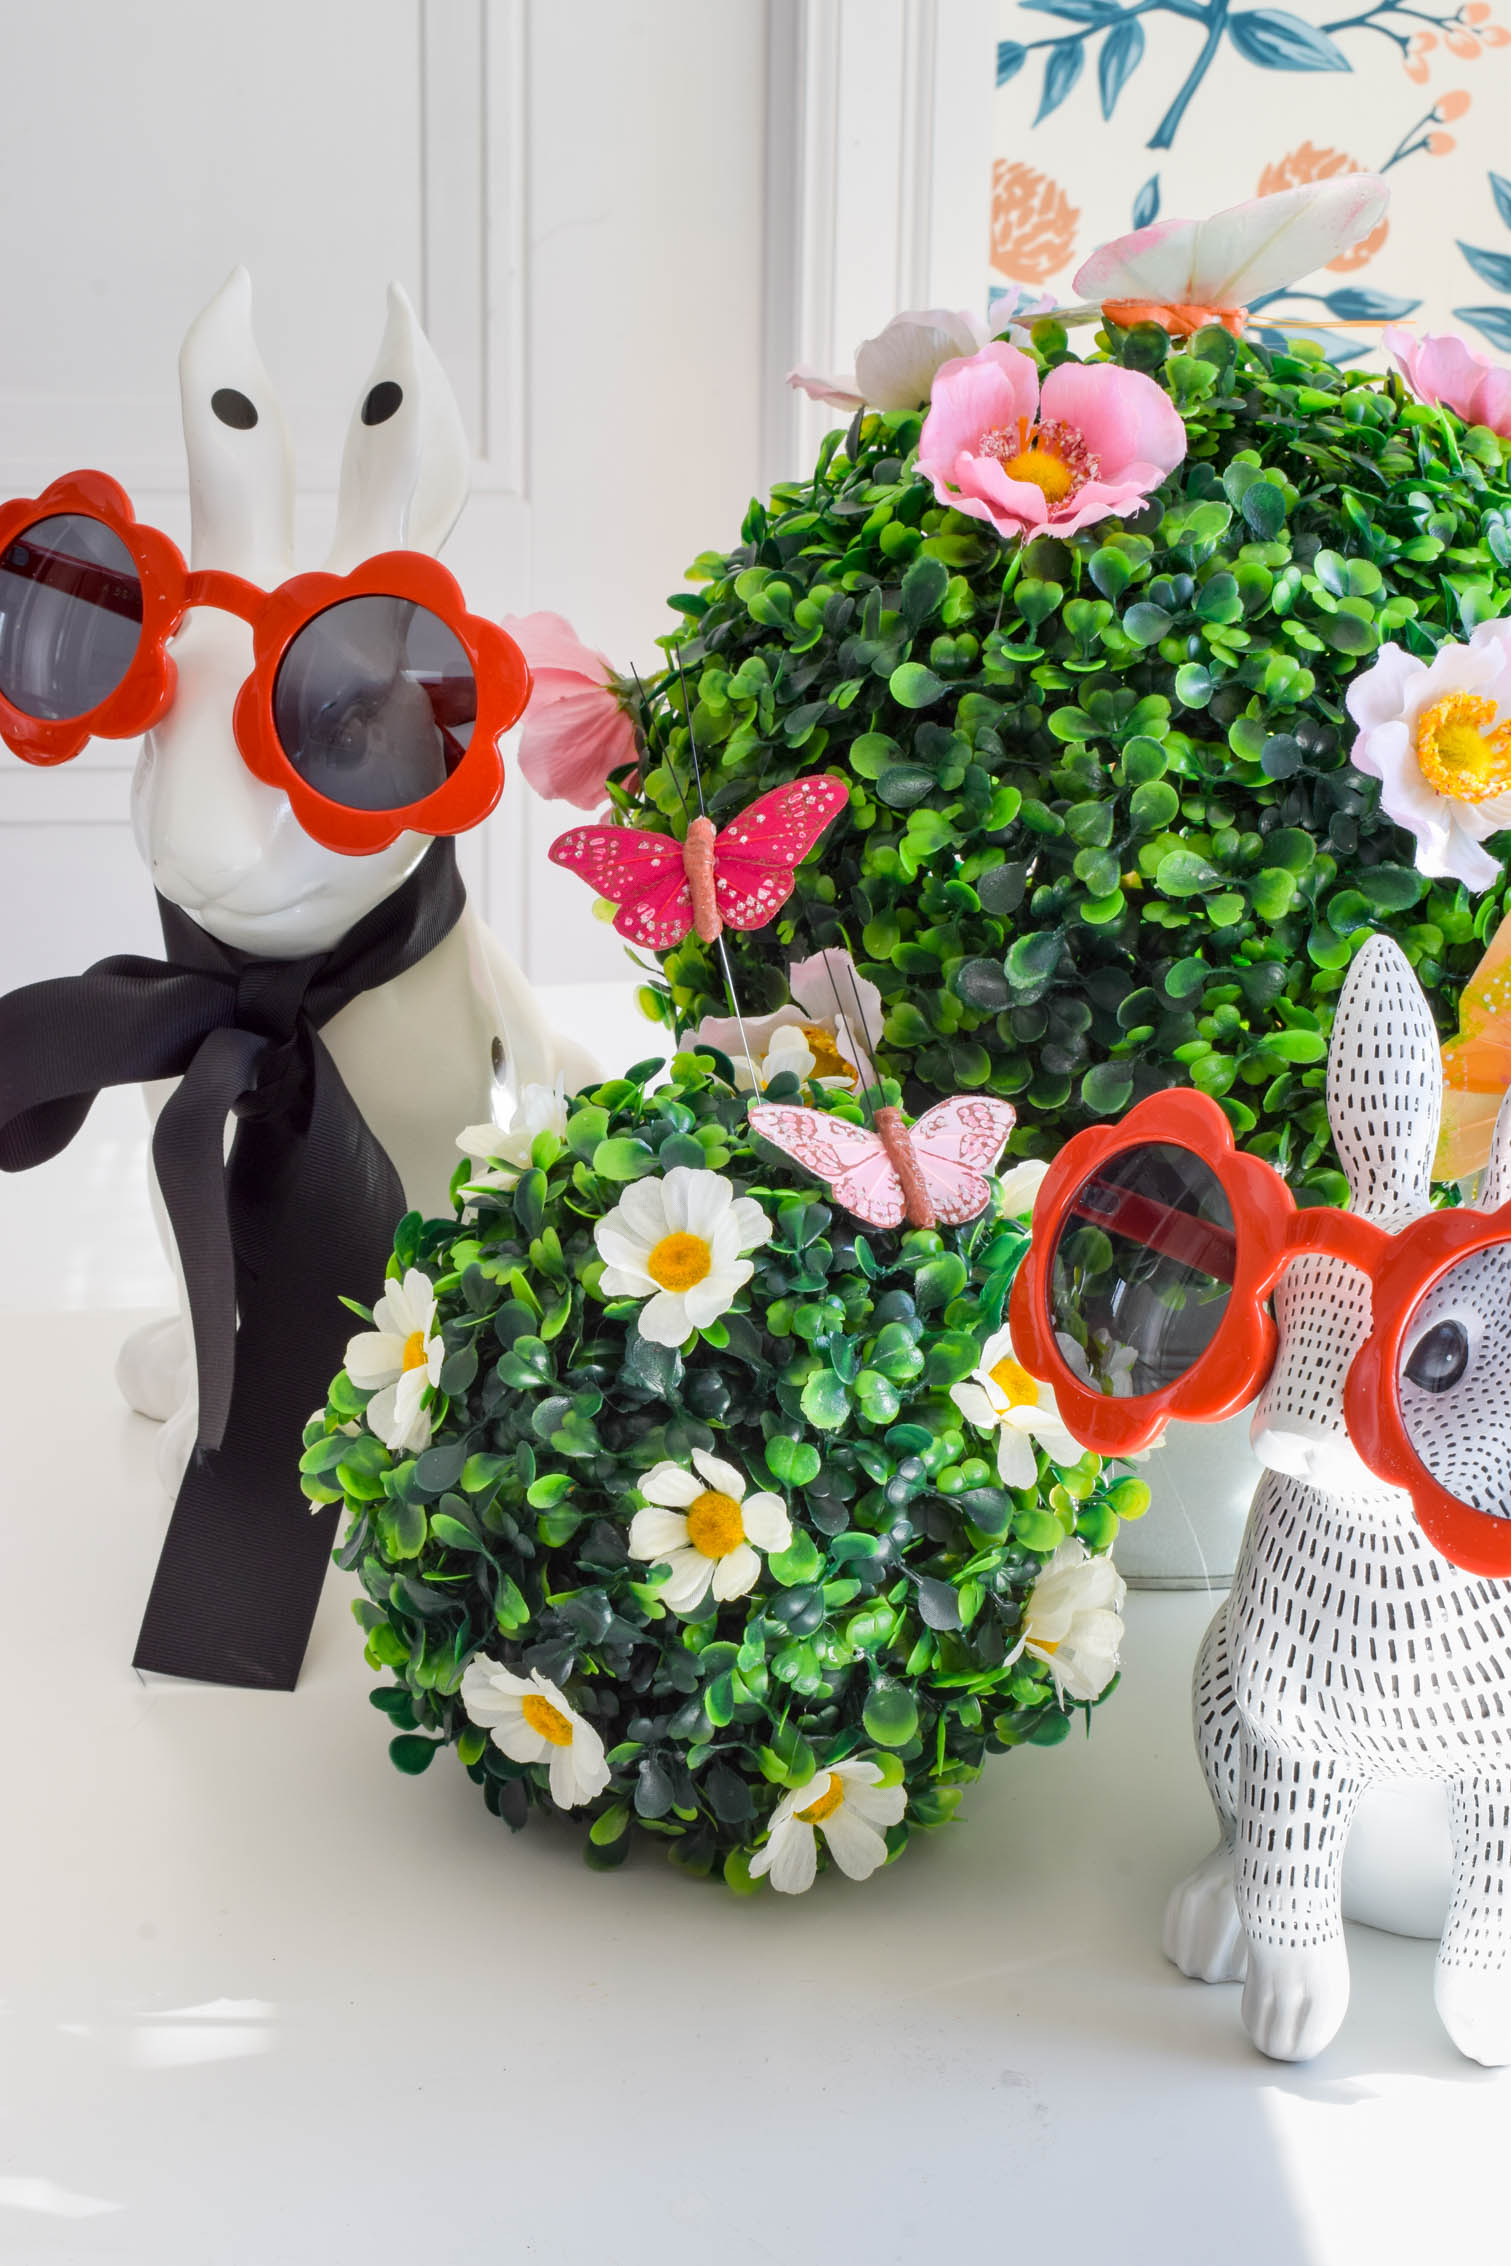 Make an Easy spring floral centrepiece using classic boxwood and silk flowers. Mod style with modern vibes. Don't forget the bunnies with sunnies!